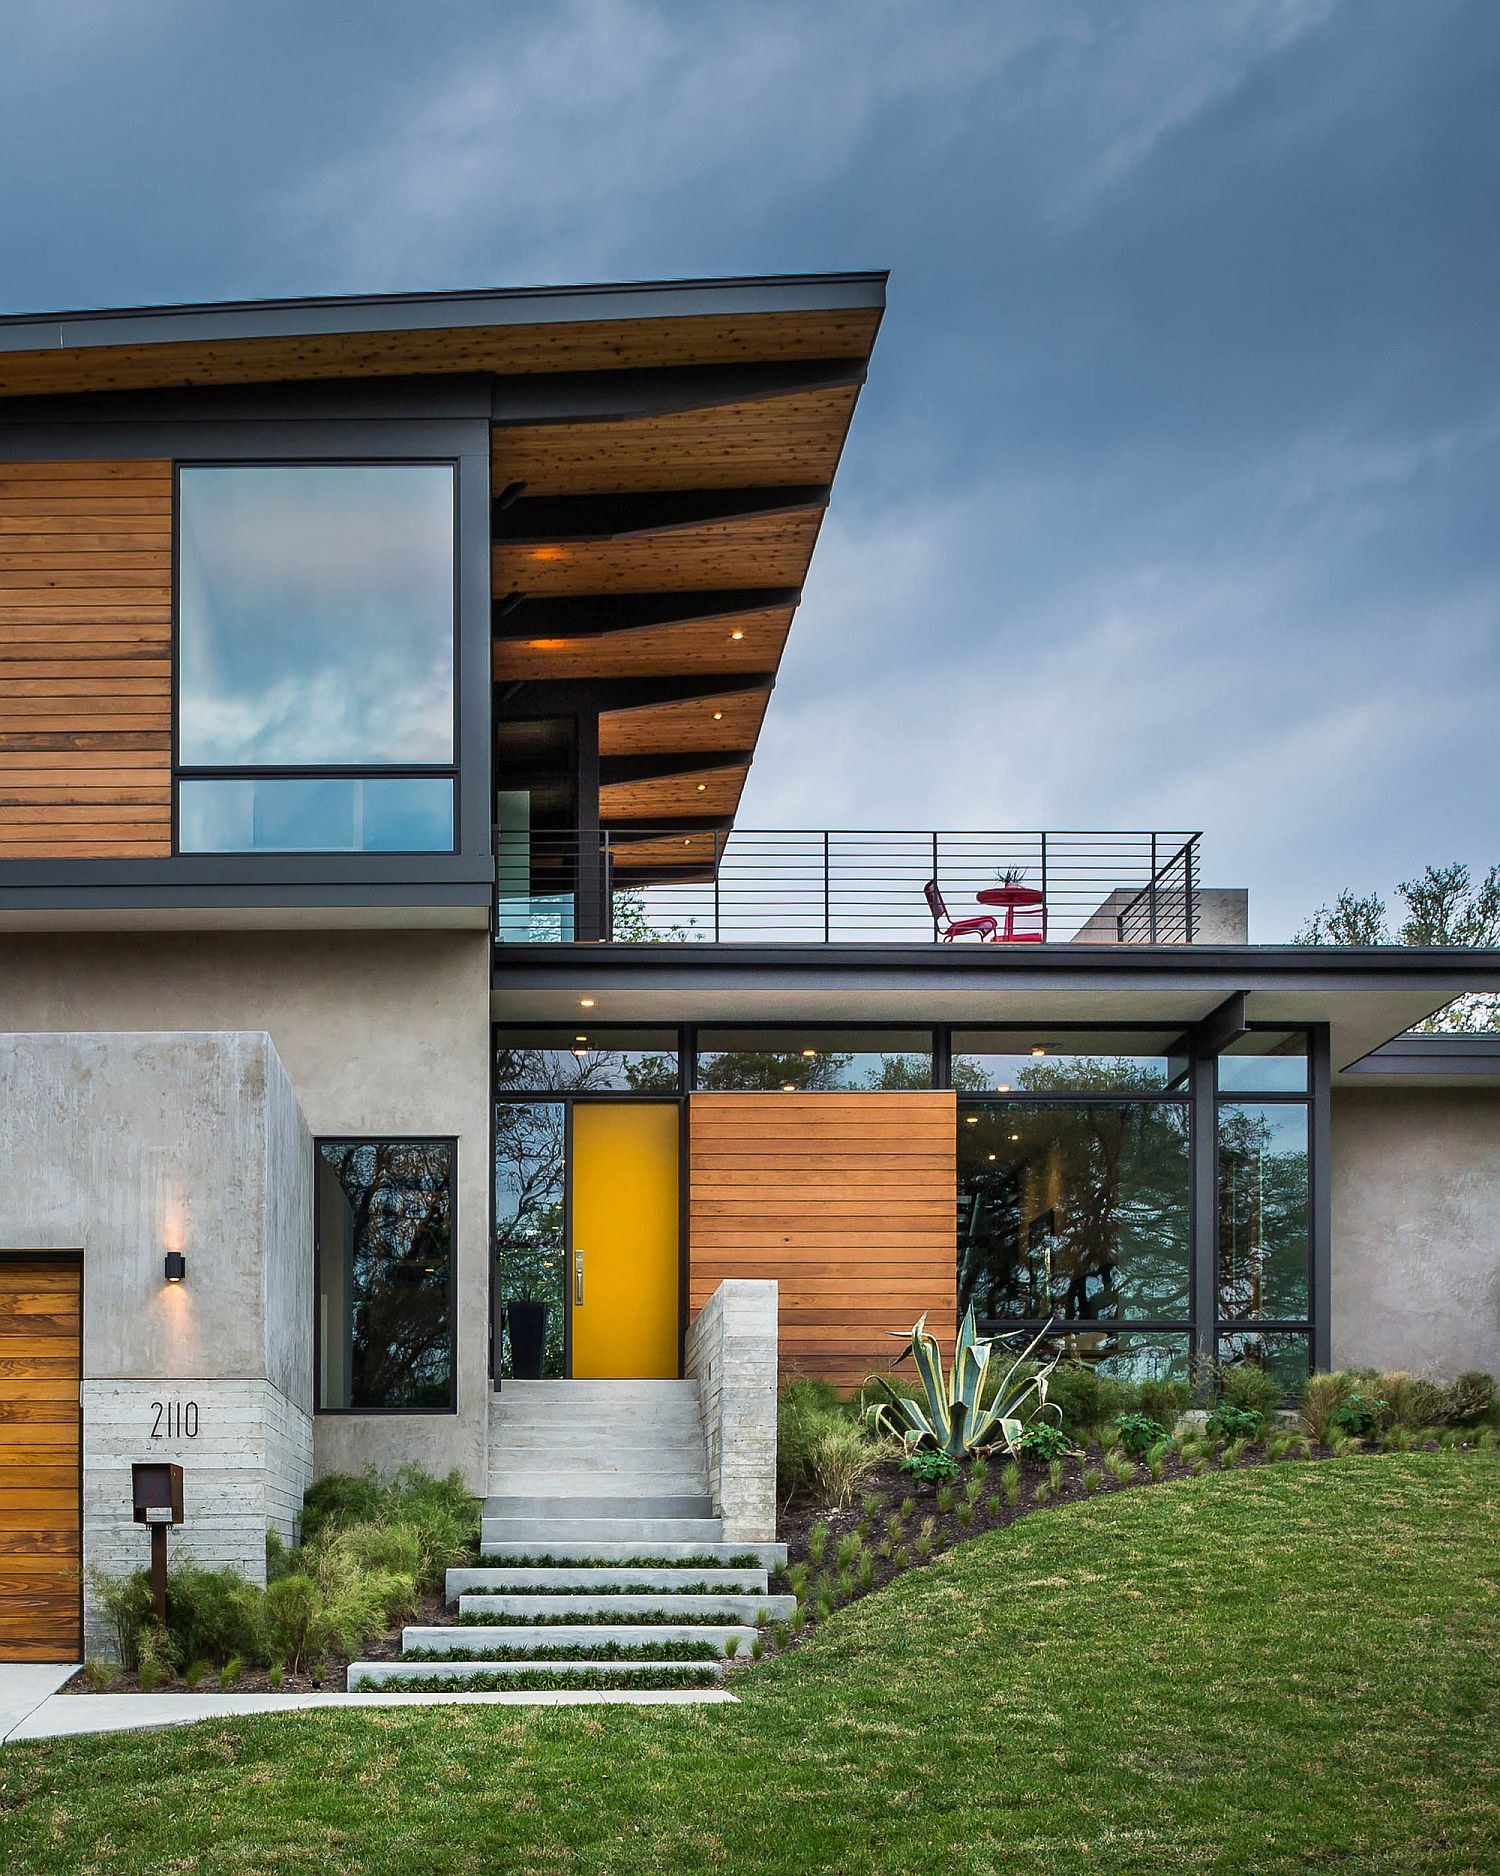 Wooden slats and steel beams shape a gorgeous home on the outside